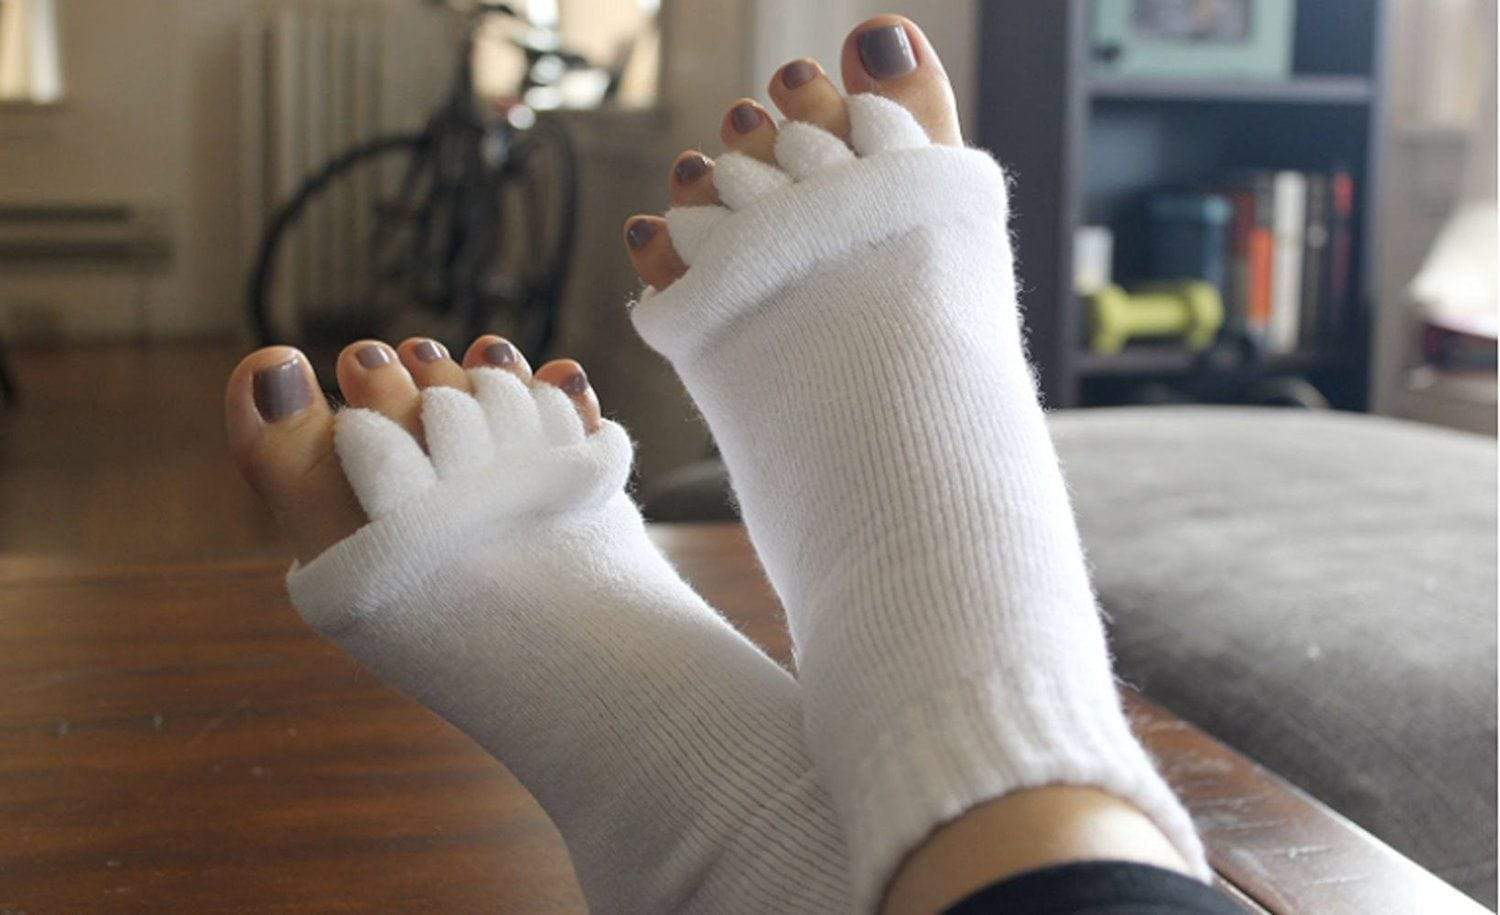 Top 5 Best Toe Separator Divider Socks For Shoe Comfort